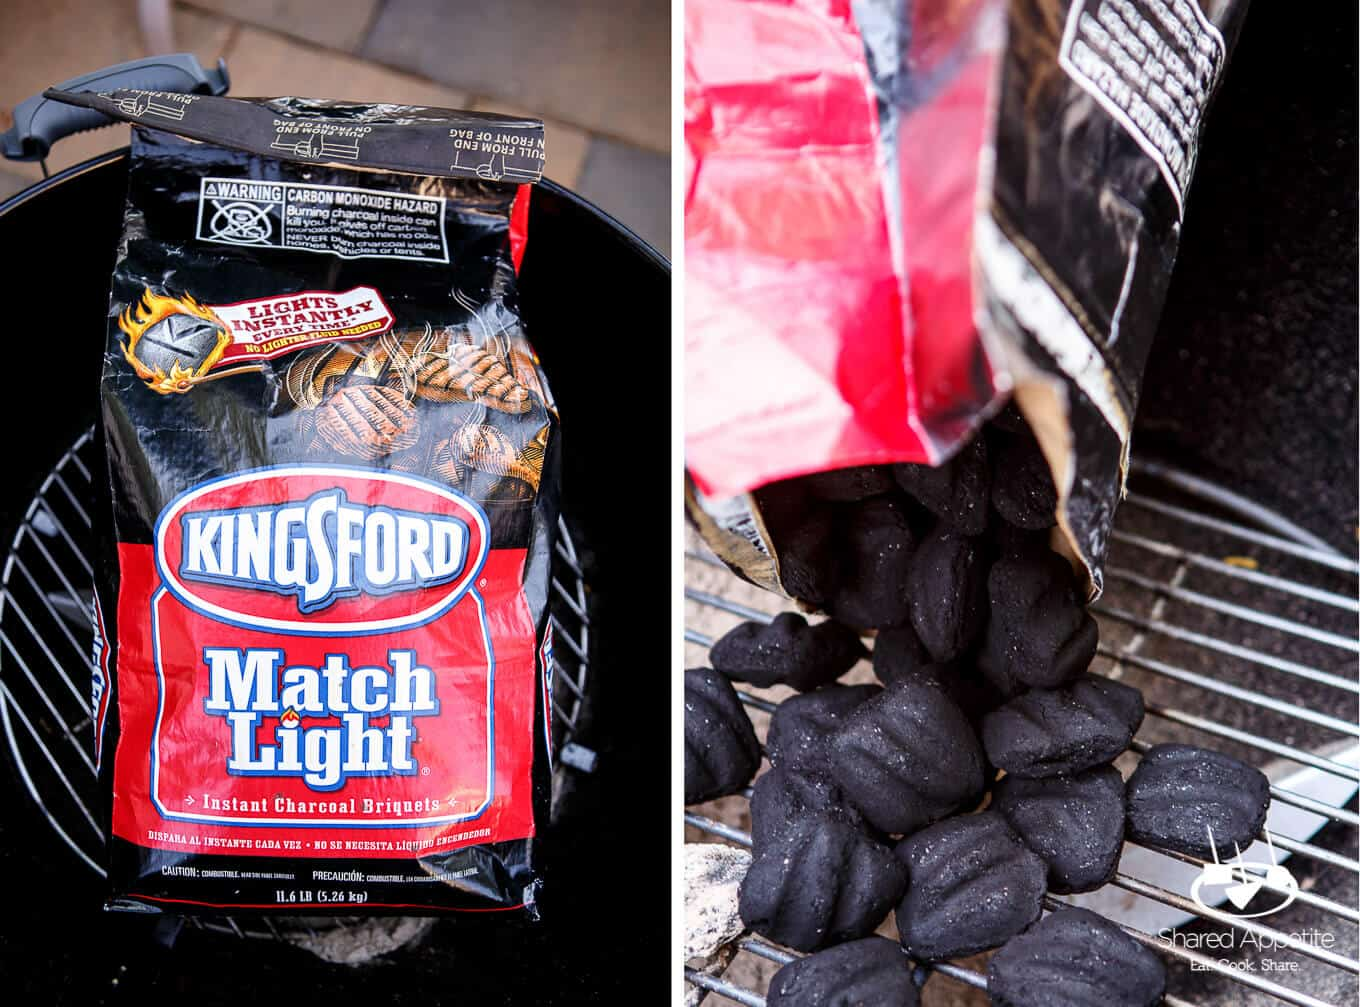 Kingsford Match Light Charcoal for The Ultimate Chicken Souvlaki with Tzatziki and Israeli Salad